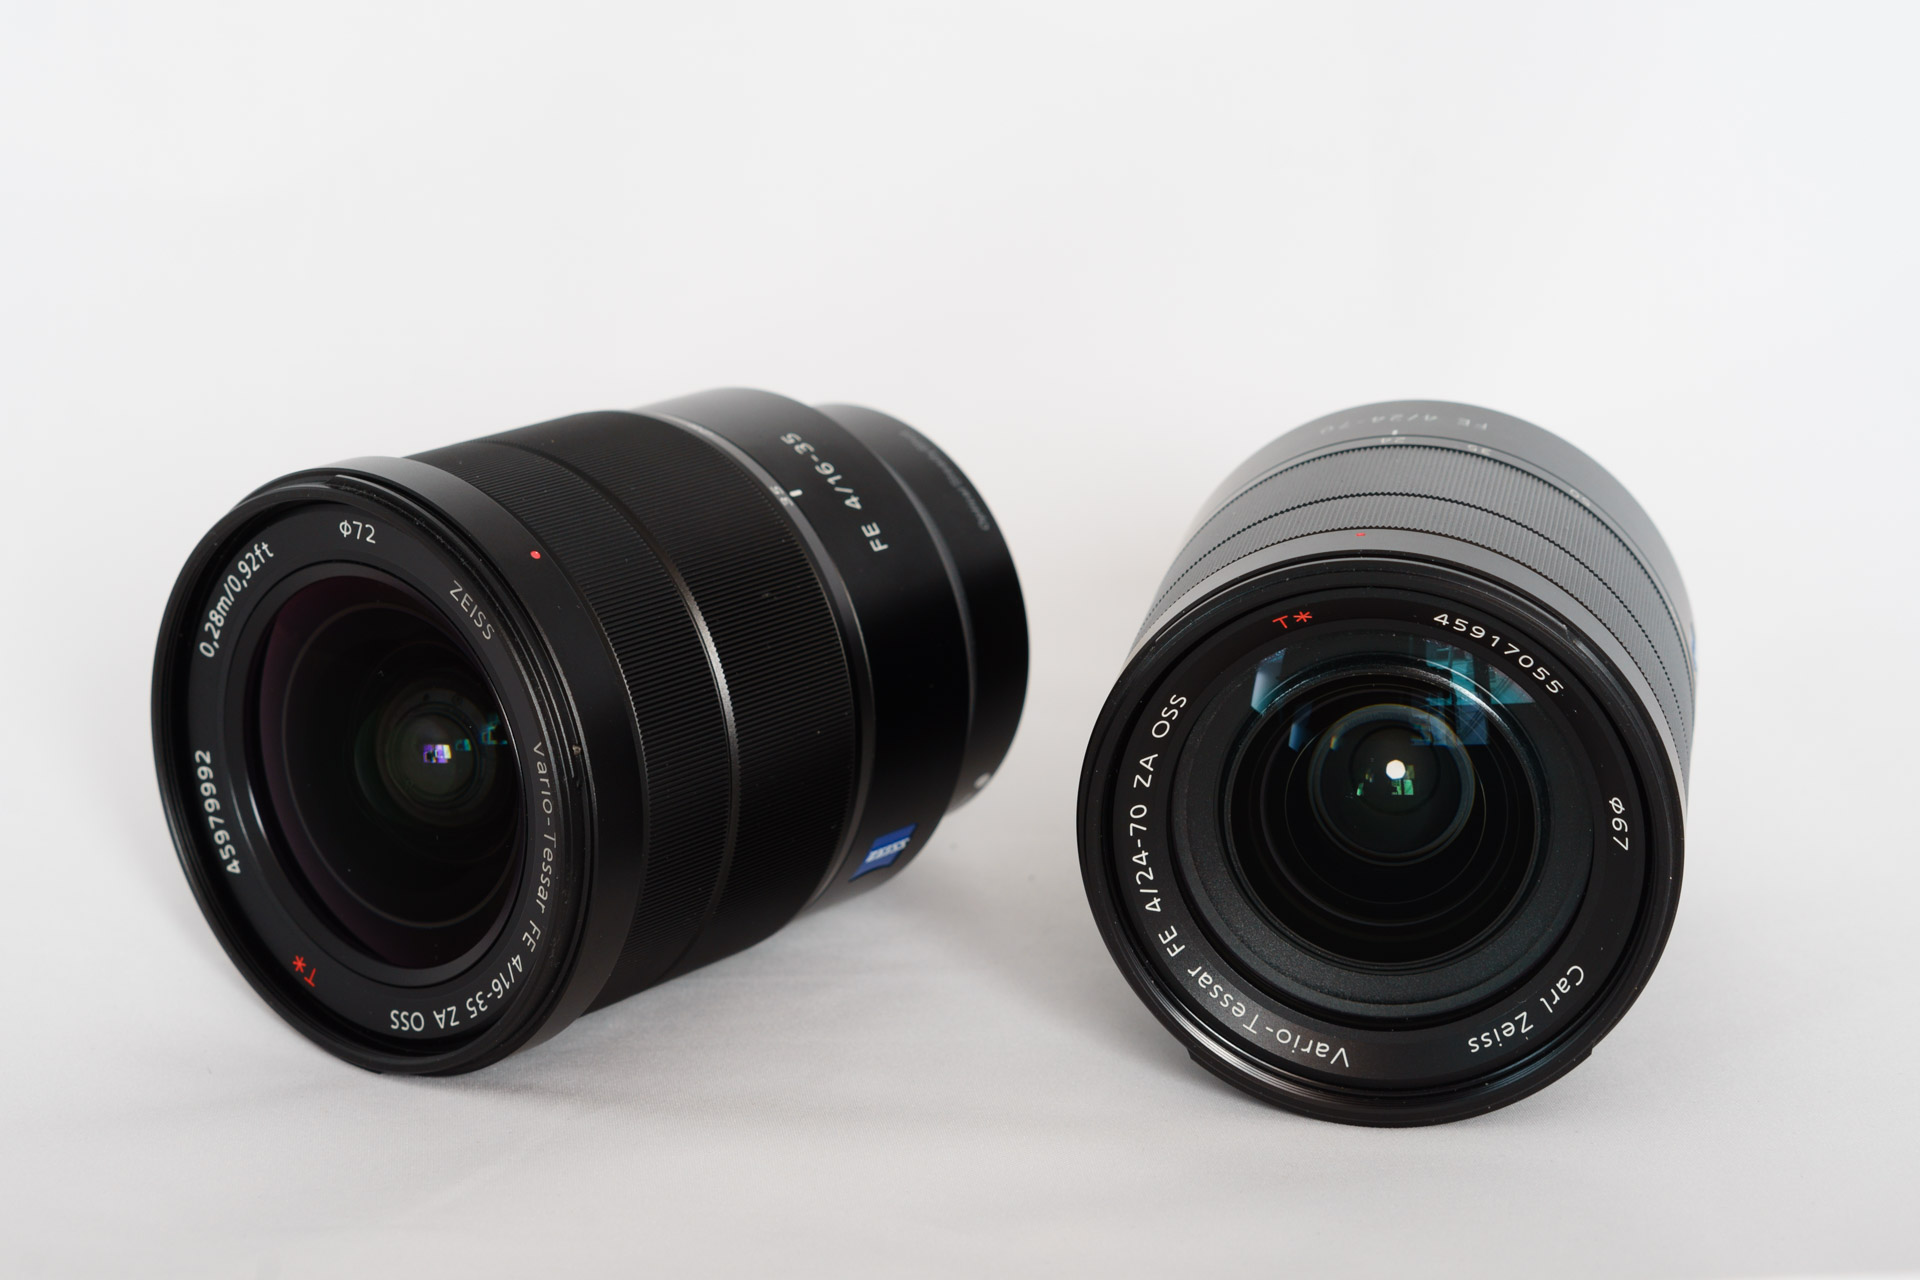 lens foxus by wire vs by